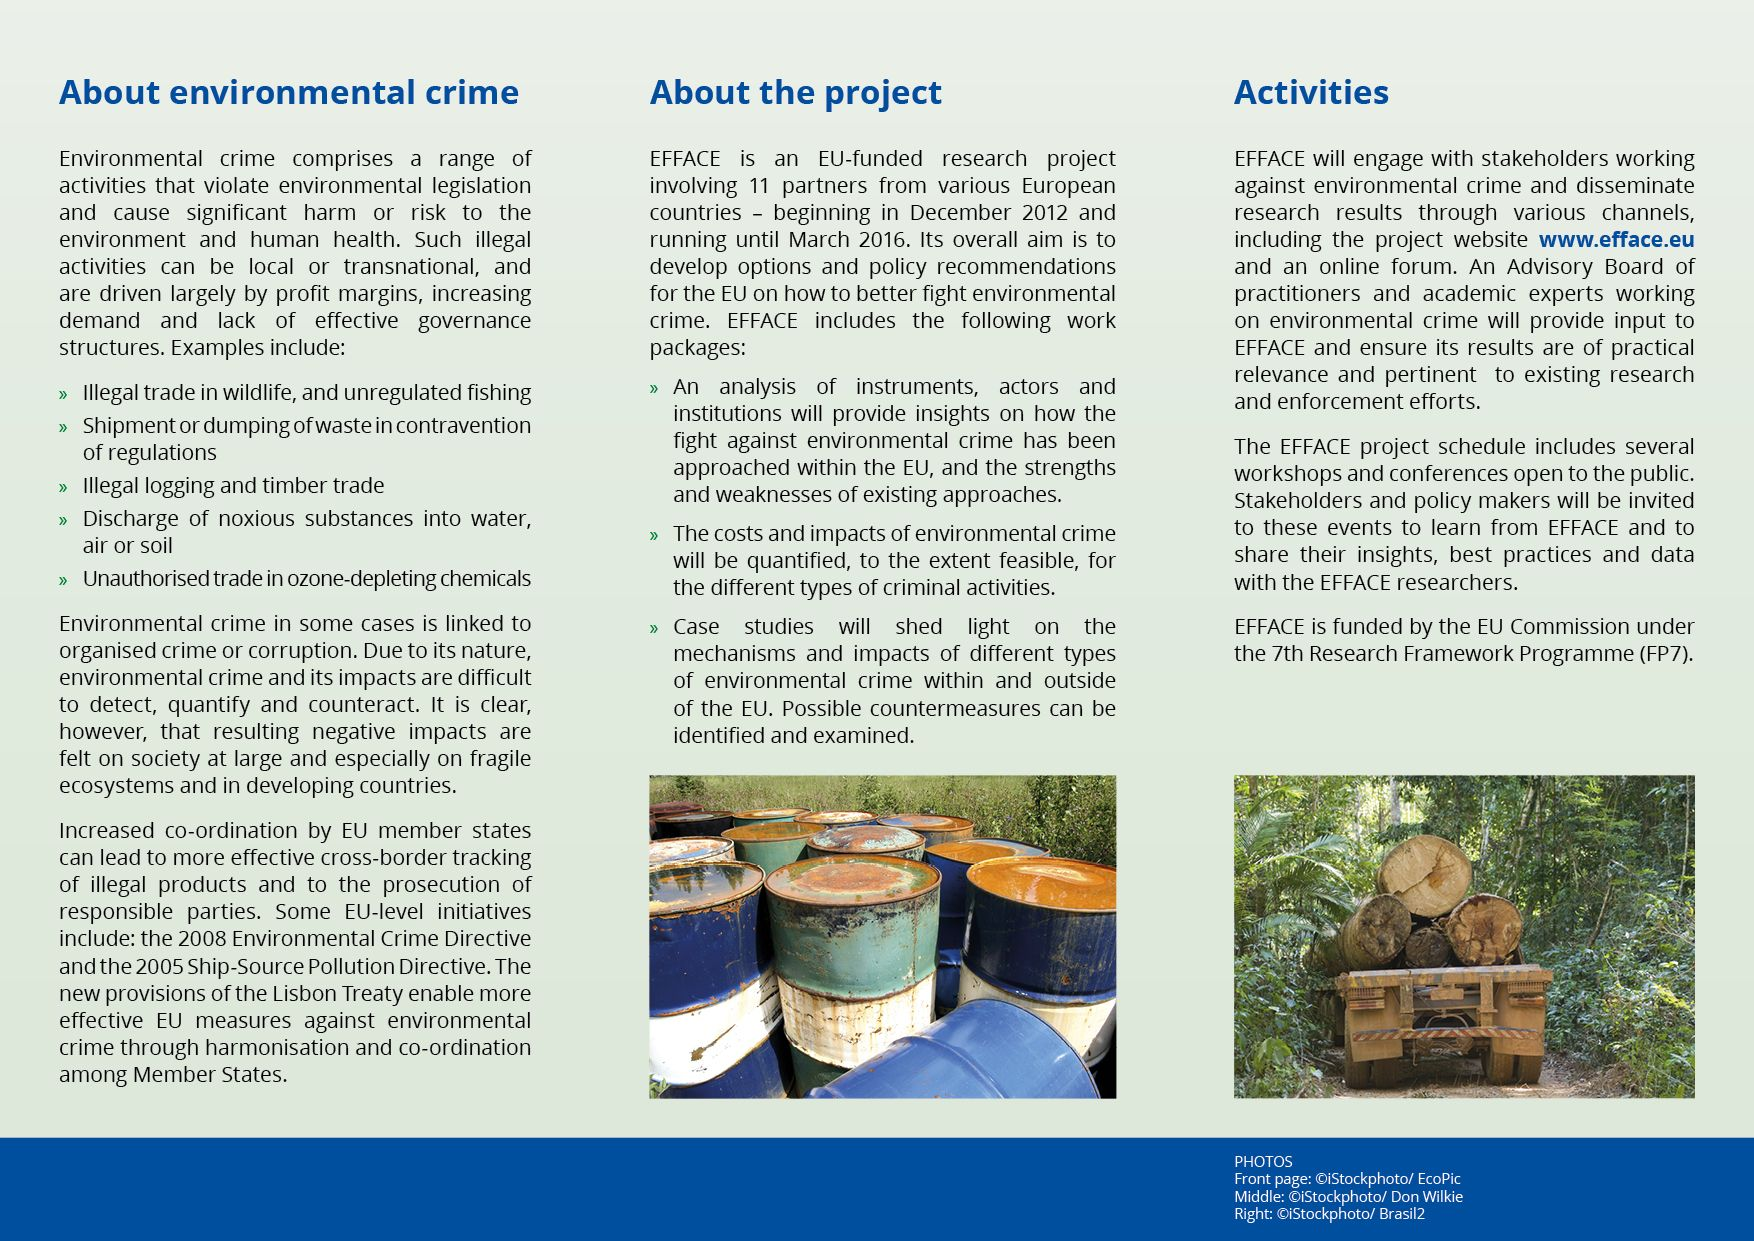 an eu research project on environmental crime institute view the full image view the full image